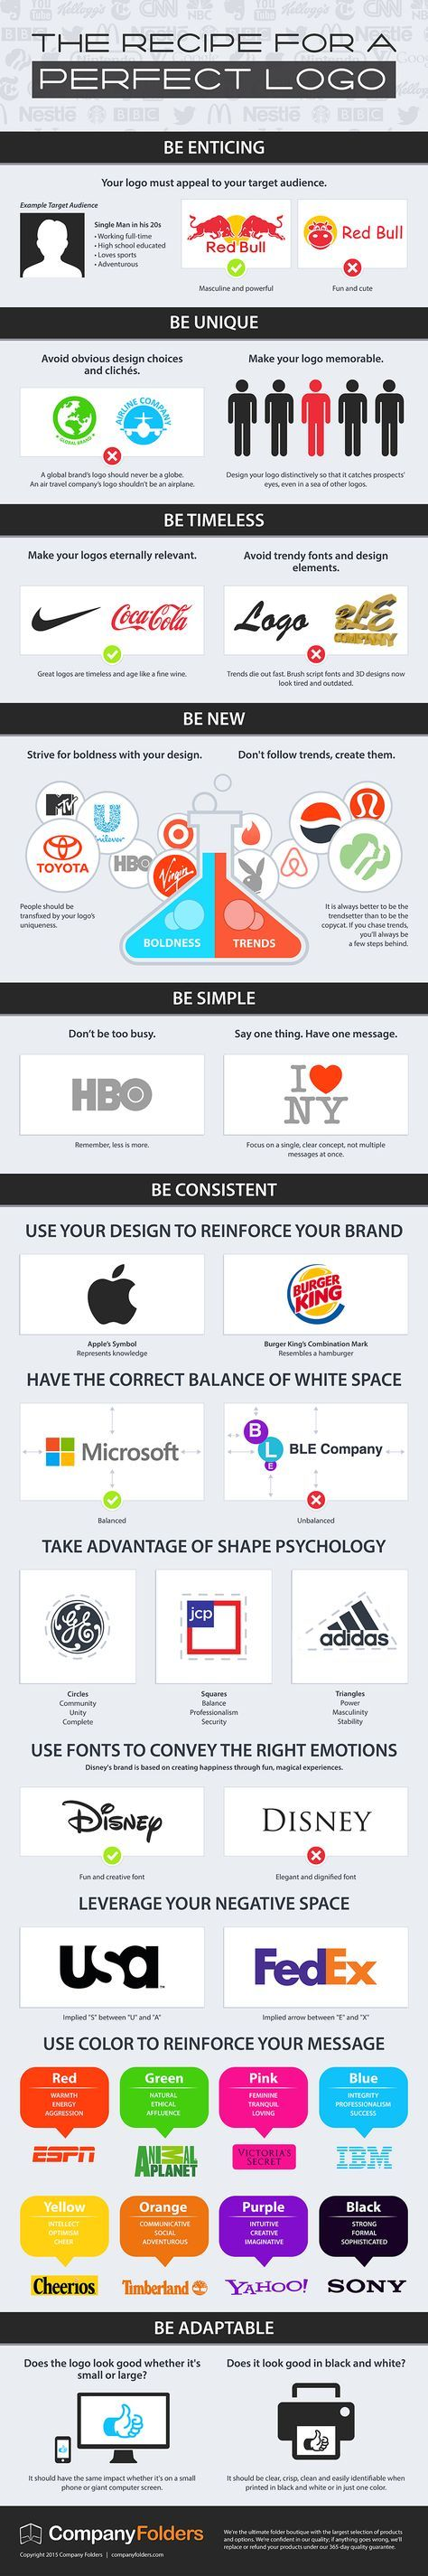 11 Steps To Creating The Perfect Business #Logo